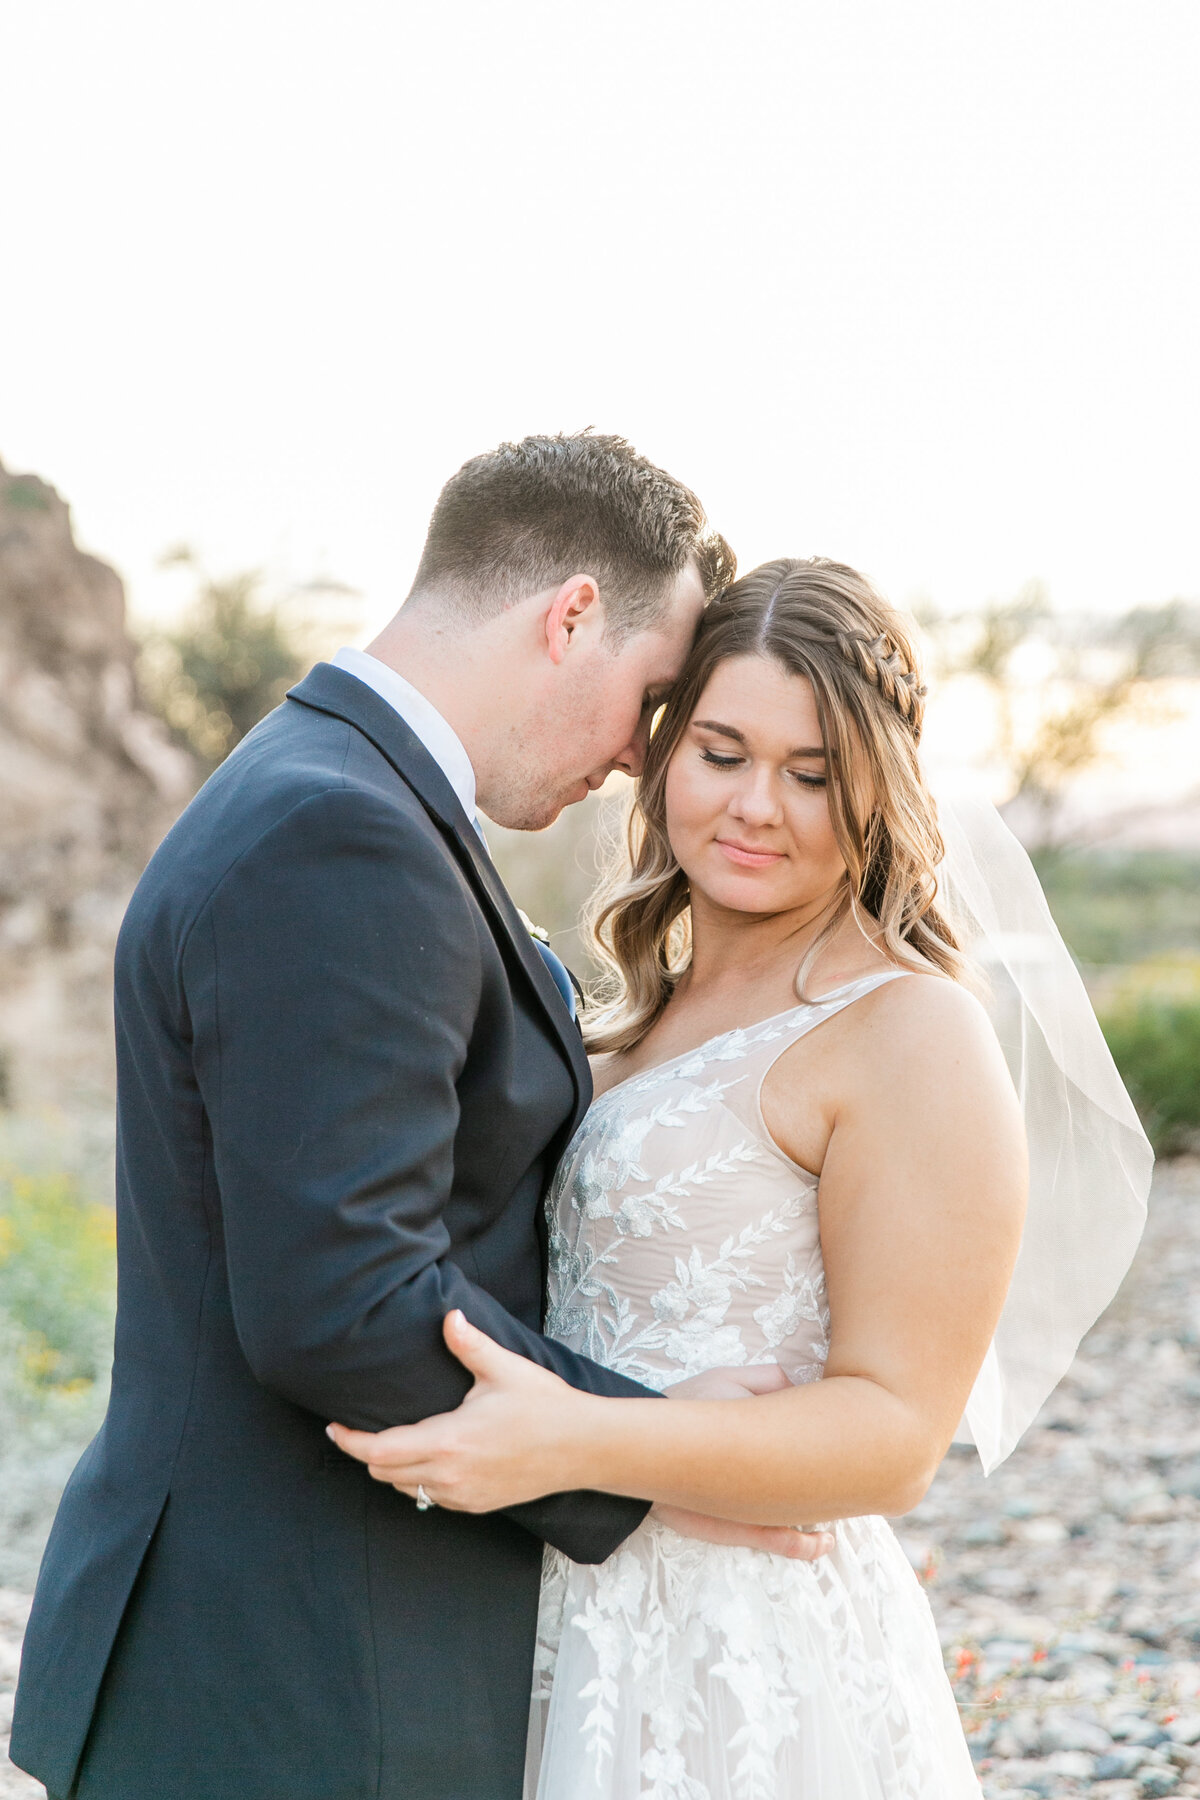 Karlie Colleen Photography - Arizona Backyard wedding - Brittney & Josh-234